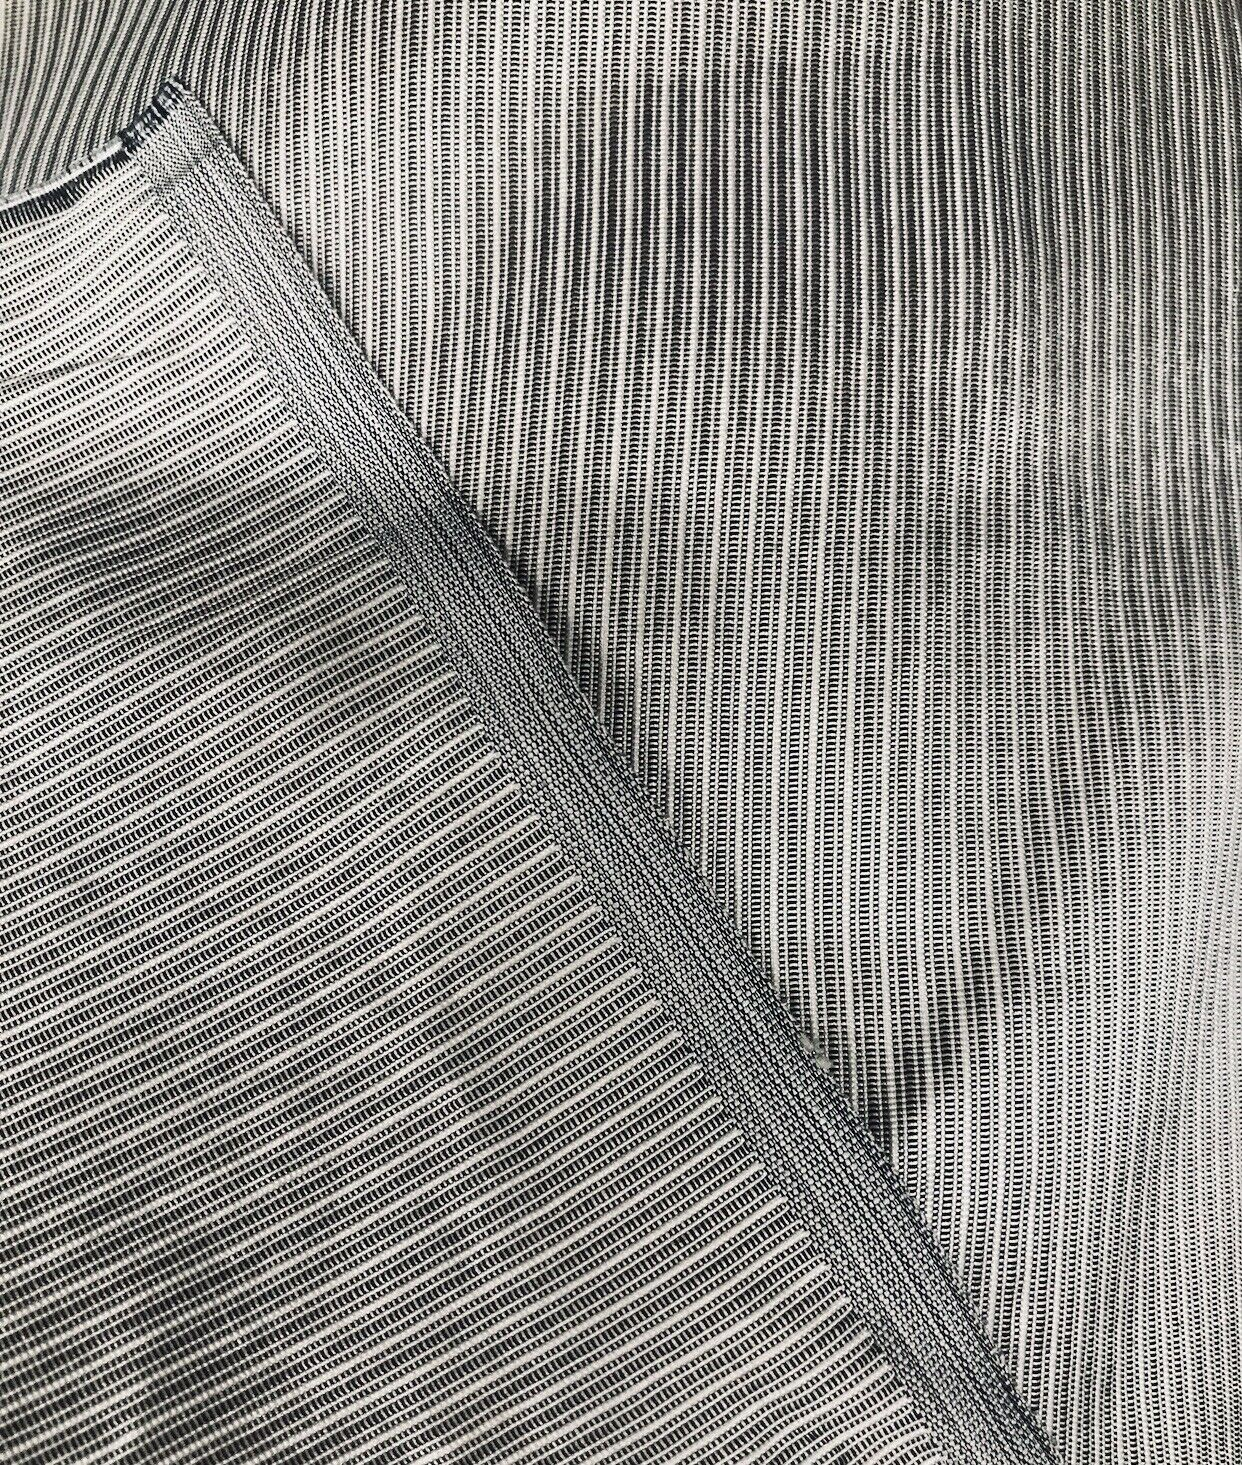 NEW SALE! Designer 100% Silk Dupioni Grey White Pinstripe Stripe Fabric Drapery